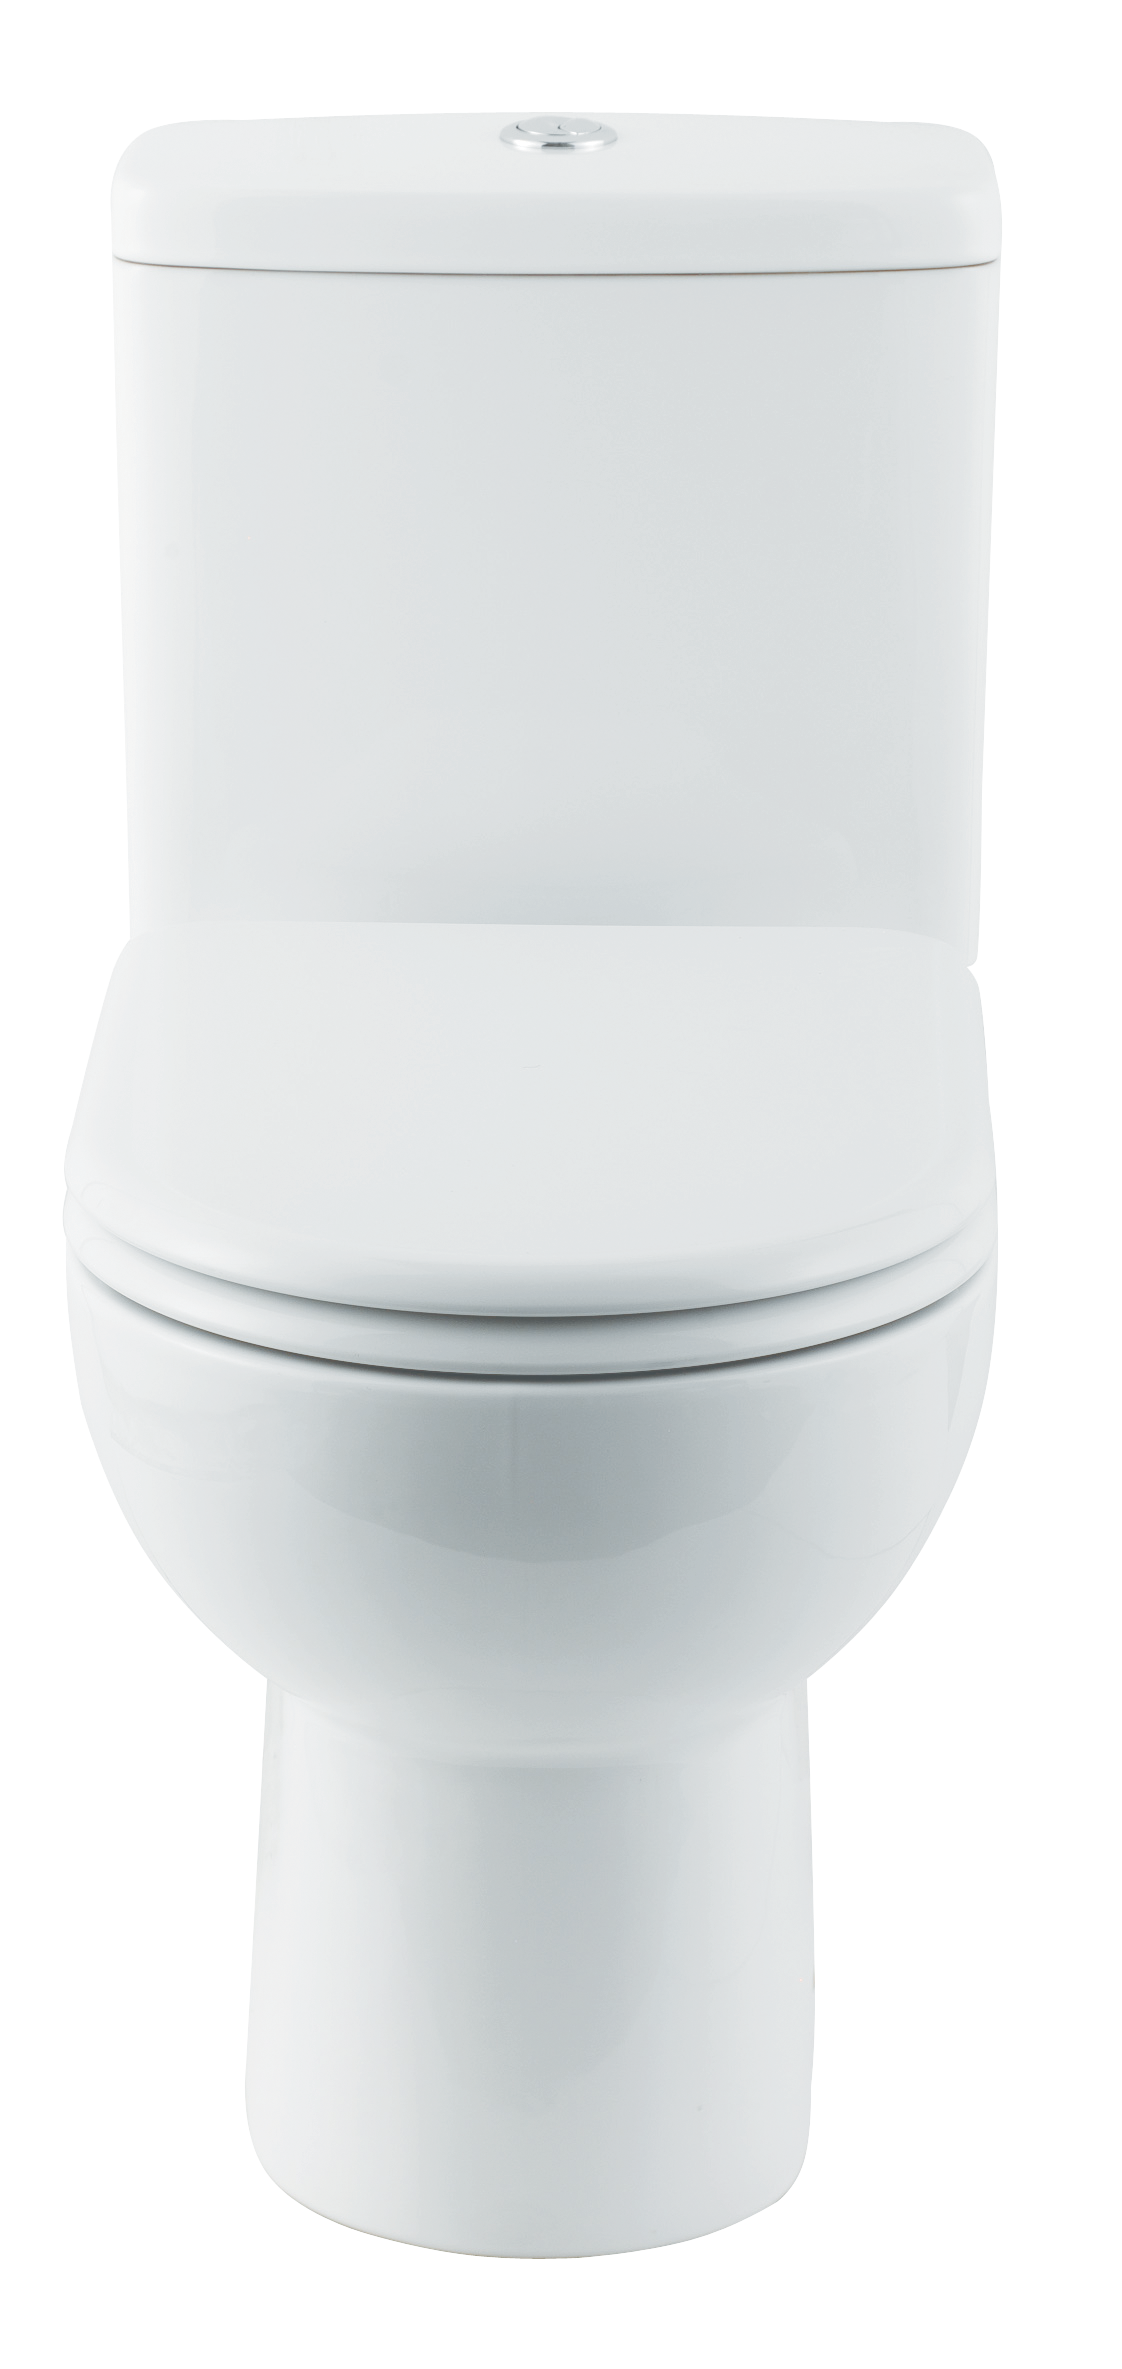 Shape Toilet